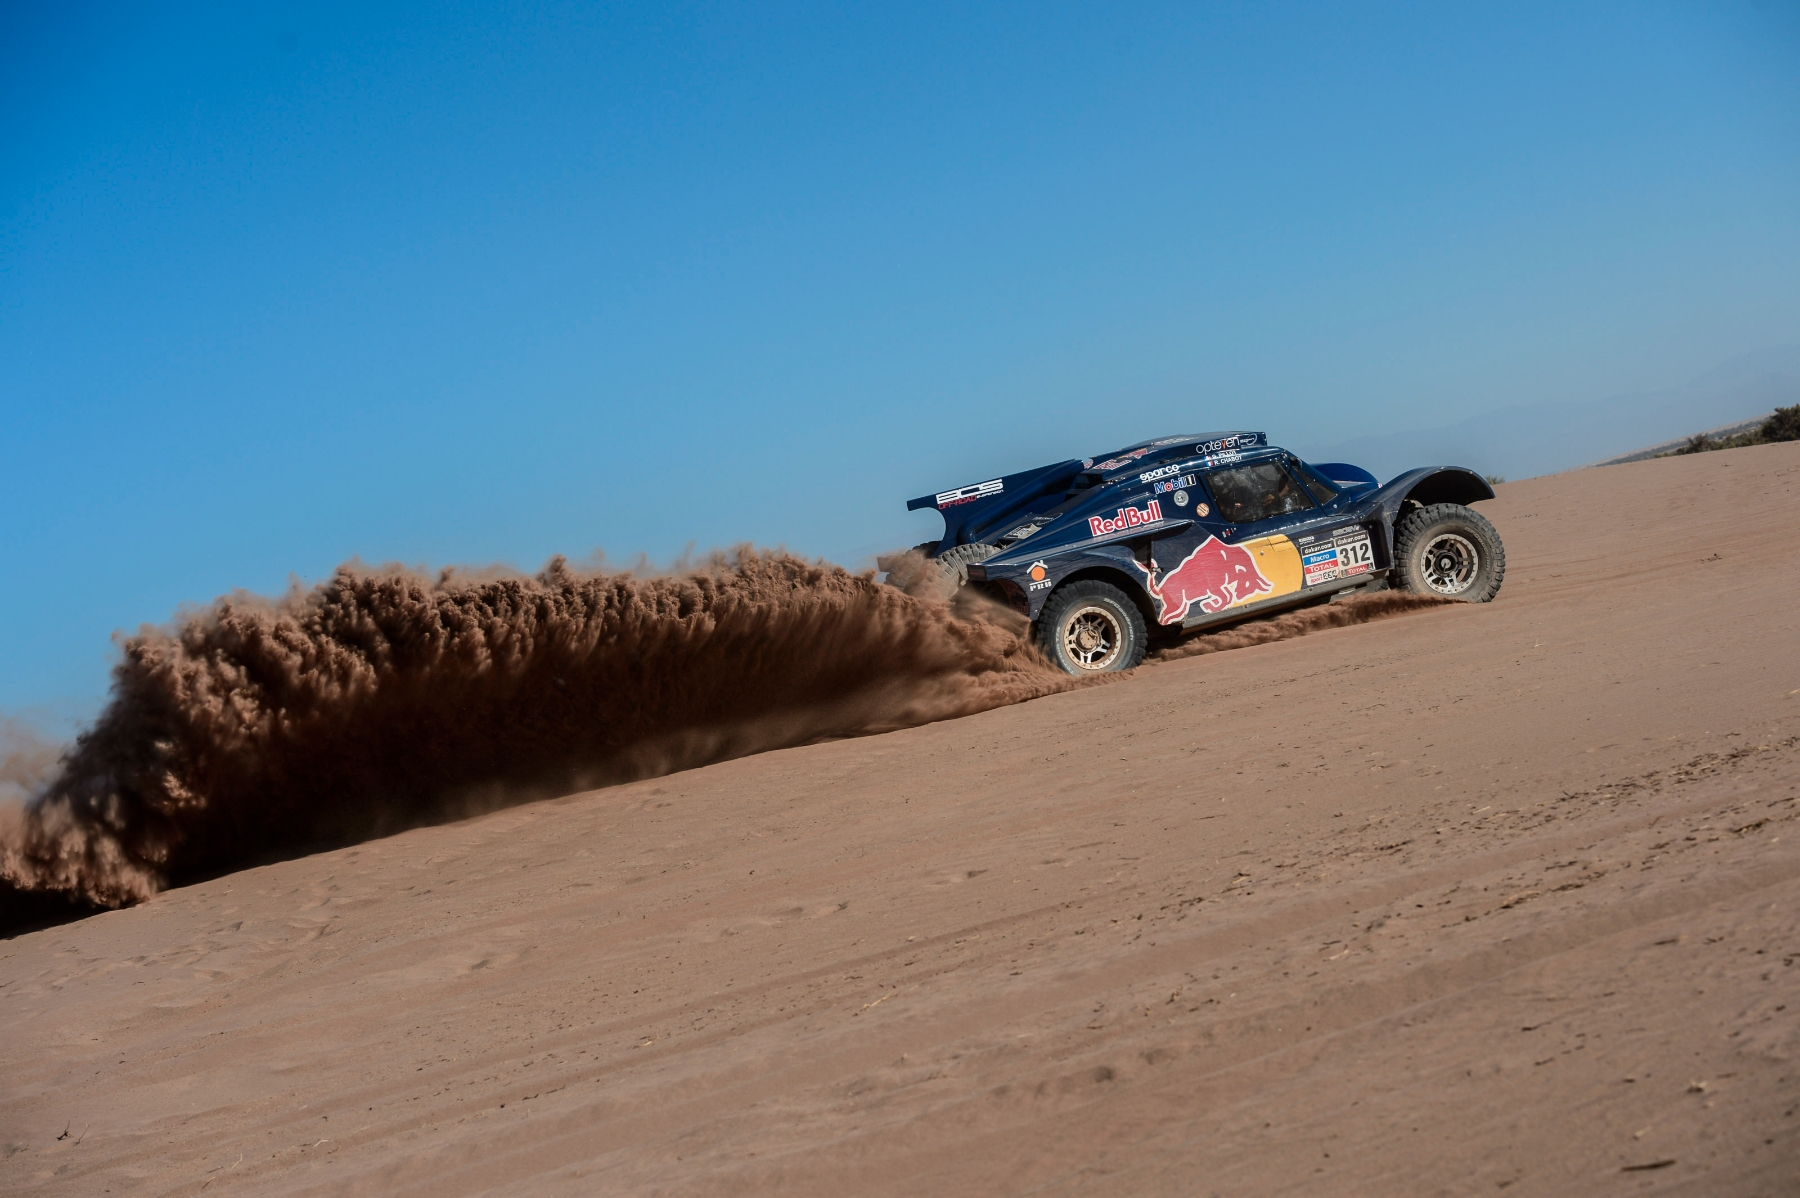 Ronan Chabot (driver) and Gilles Pillot (co-driver) race during the 5th stage of Dakar Rally from Chilecito to Tucuman, Argentina on January 9th, 2014